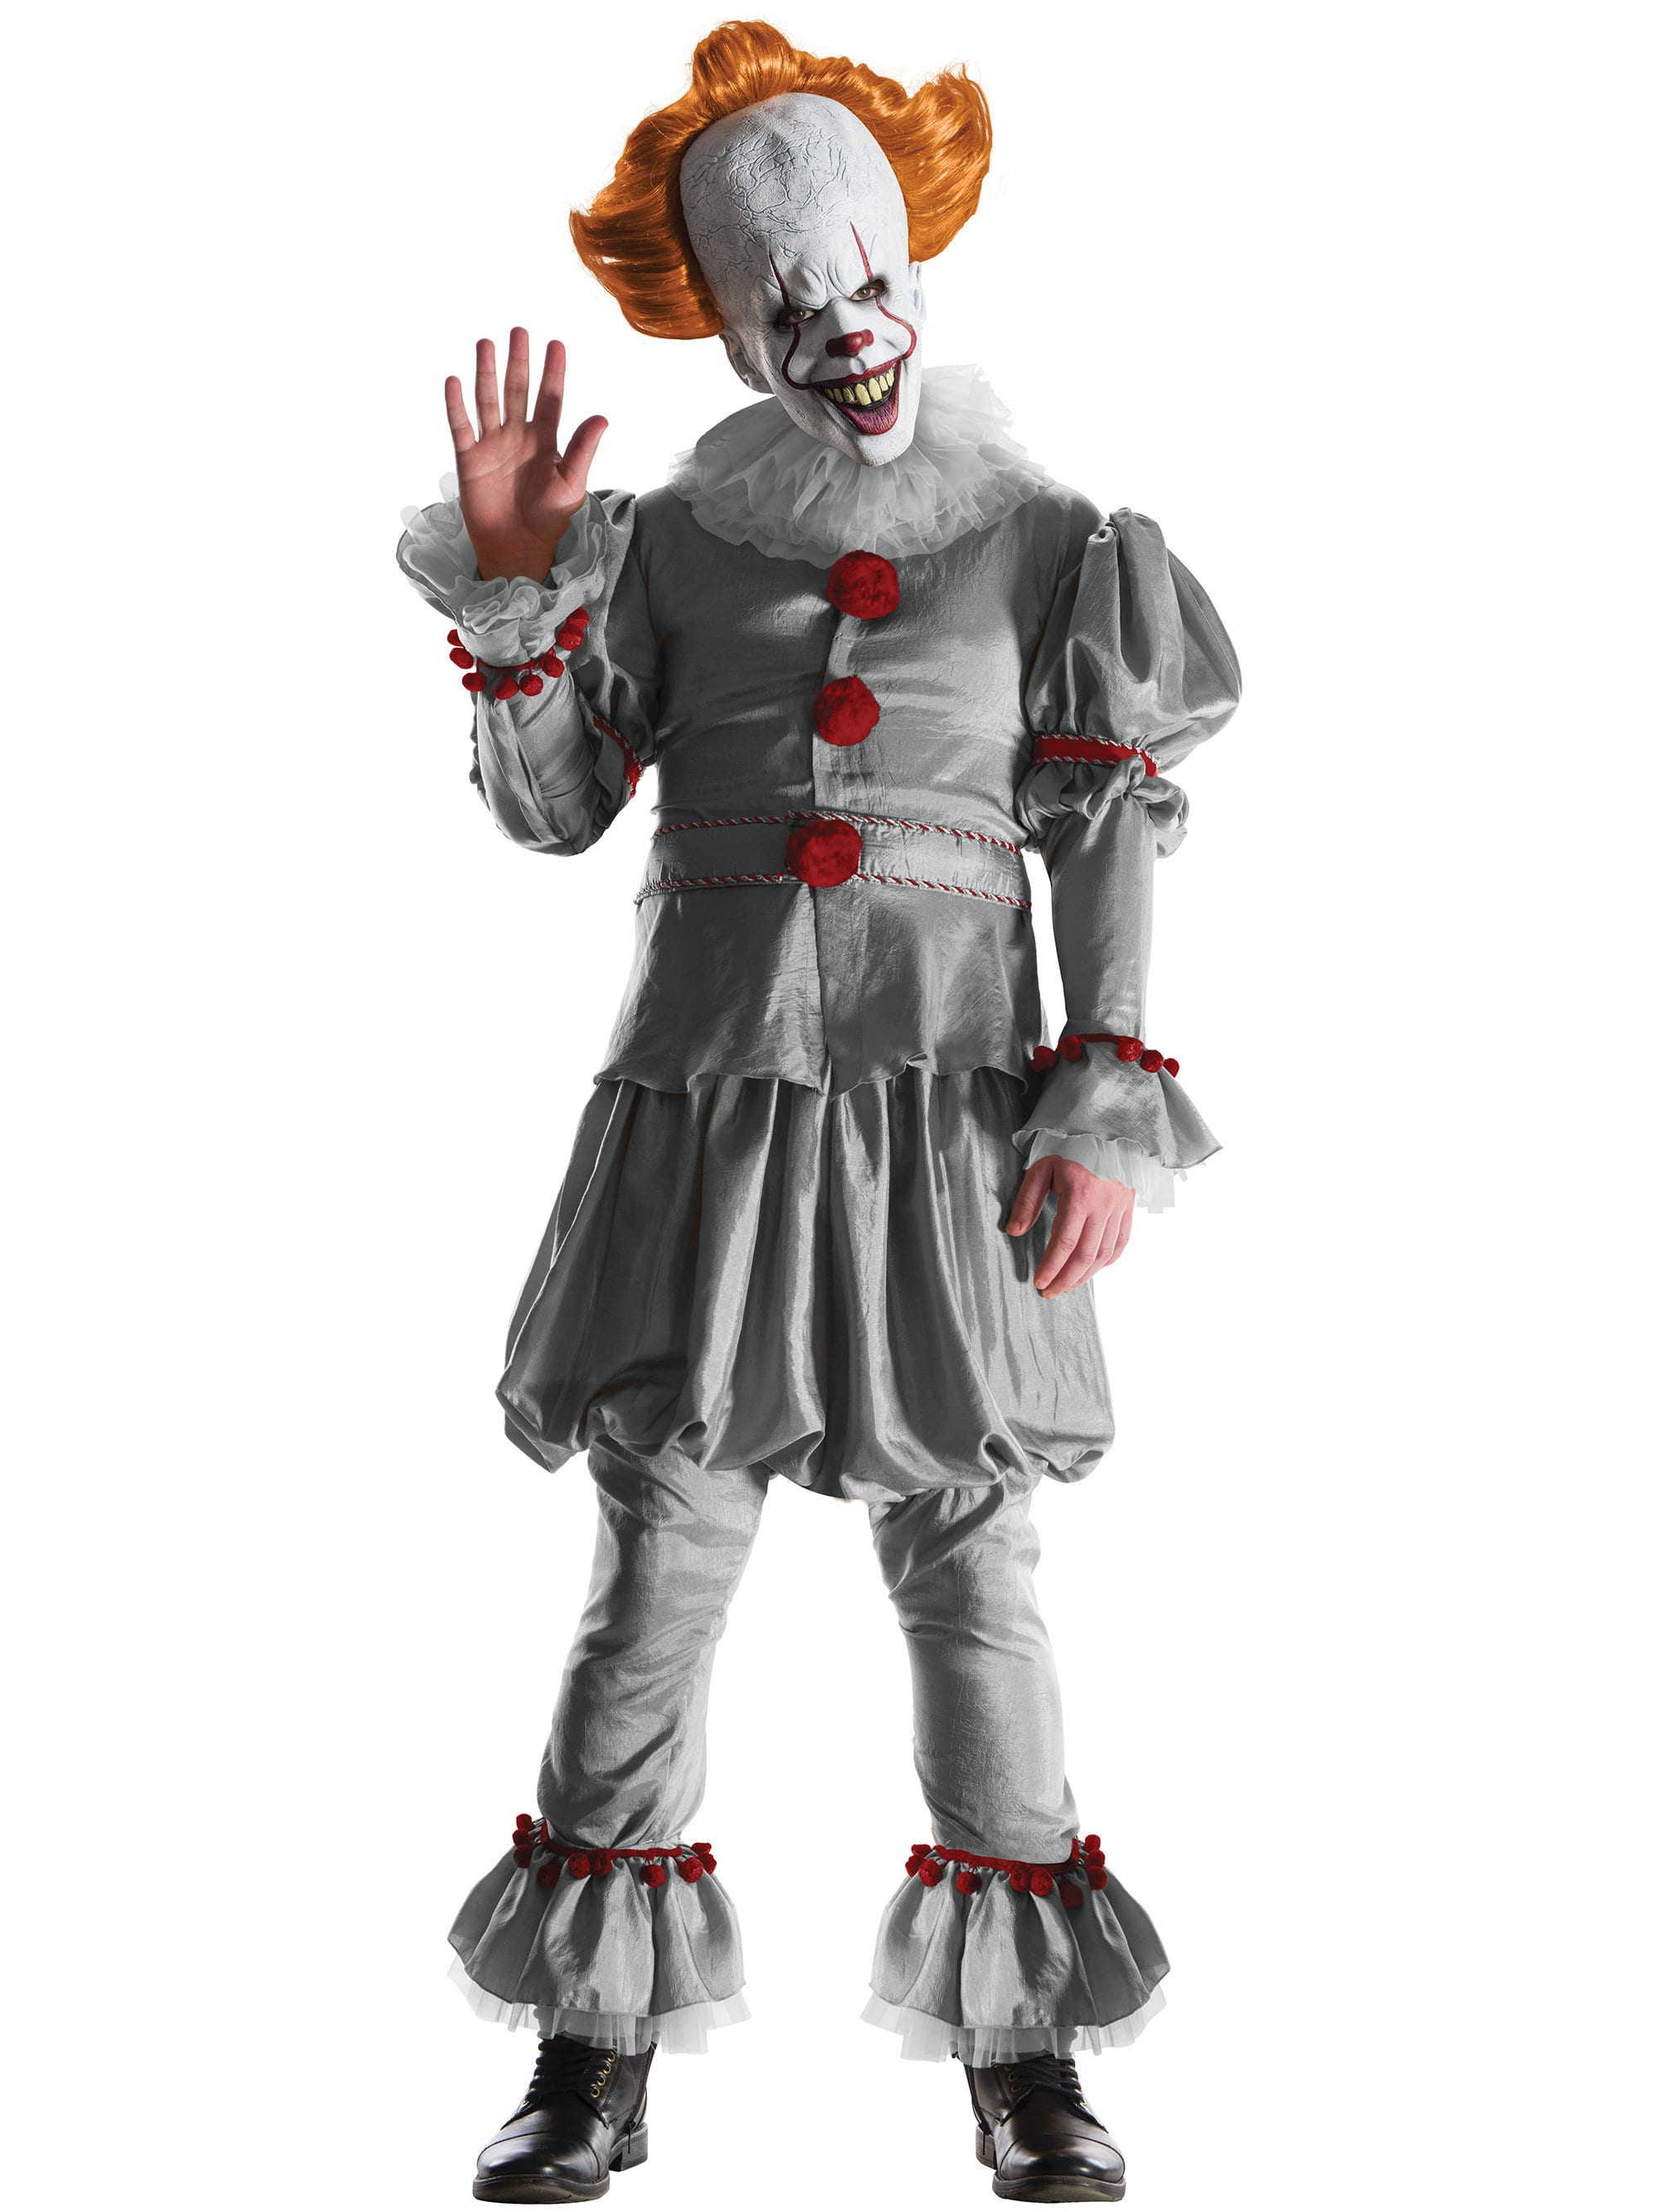 Bad Pennywise Costume : pennywise, costume, Grand, Heritage, Pennywise, Costume, Costumes, Wholesale, Halloween